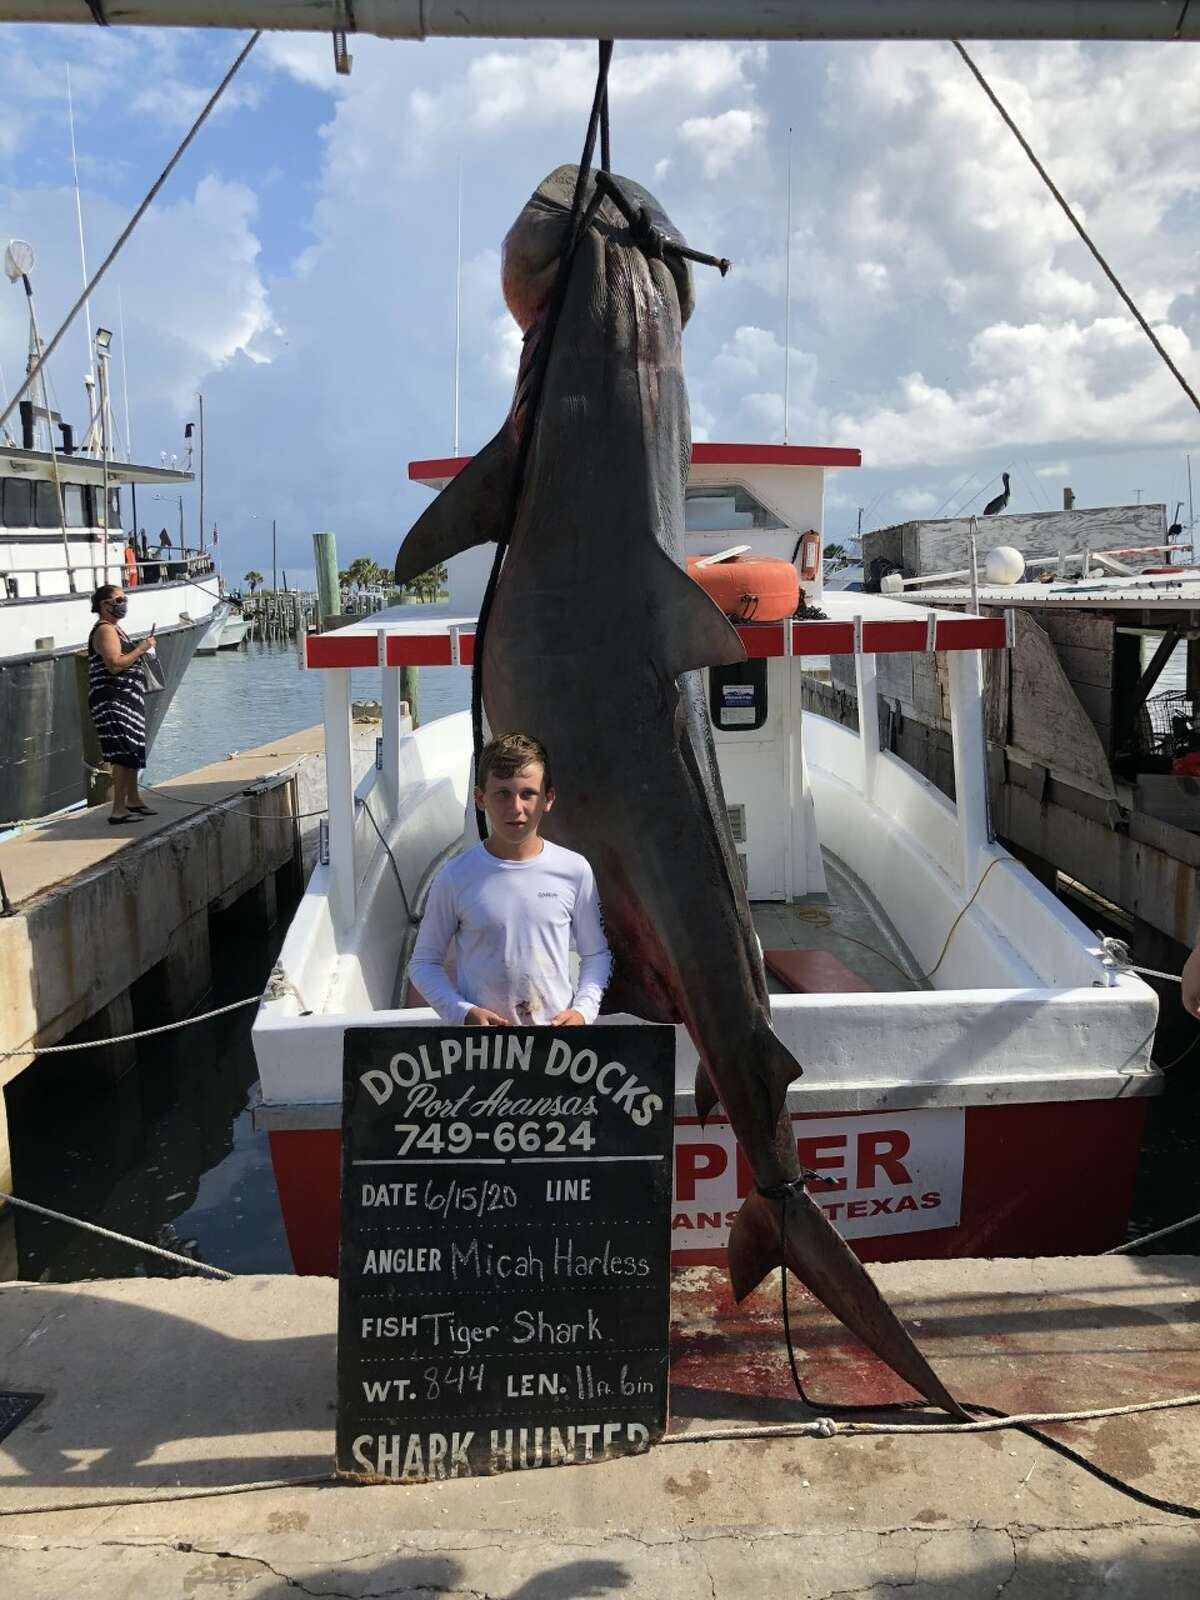 The young angler, Micah Harless, takes a photo with the shark he caught during an offshore trip in Port Aransas.